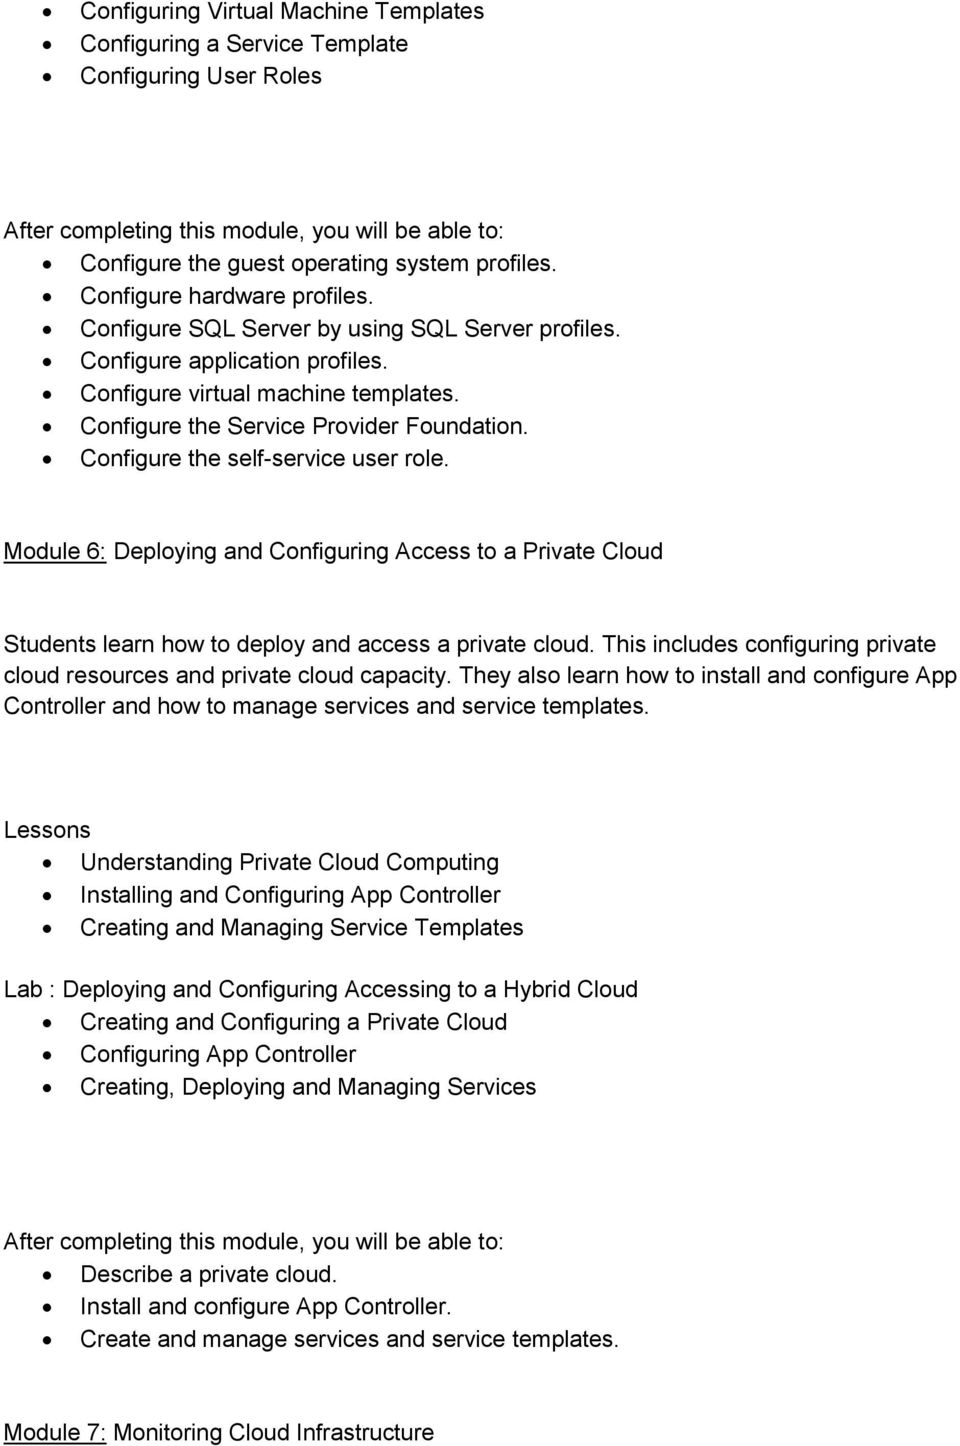 Module 6: Deploying and Configuring Access to a Private Cloud Students learn how to deploy and access a private cloud. This includes configuring private cloud resources and private cloud capacity.